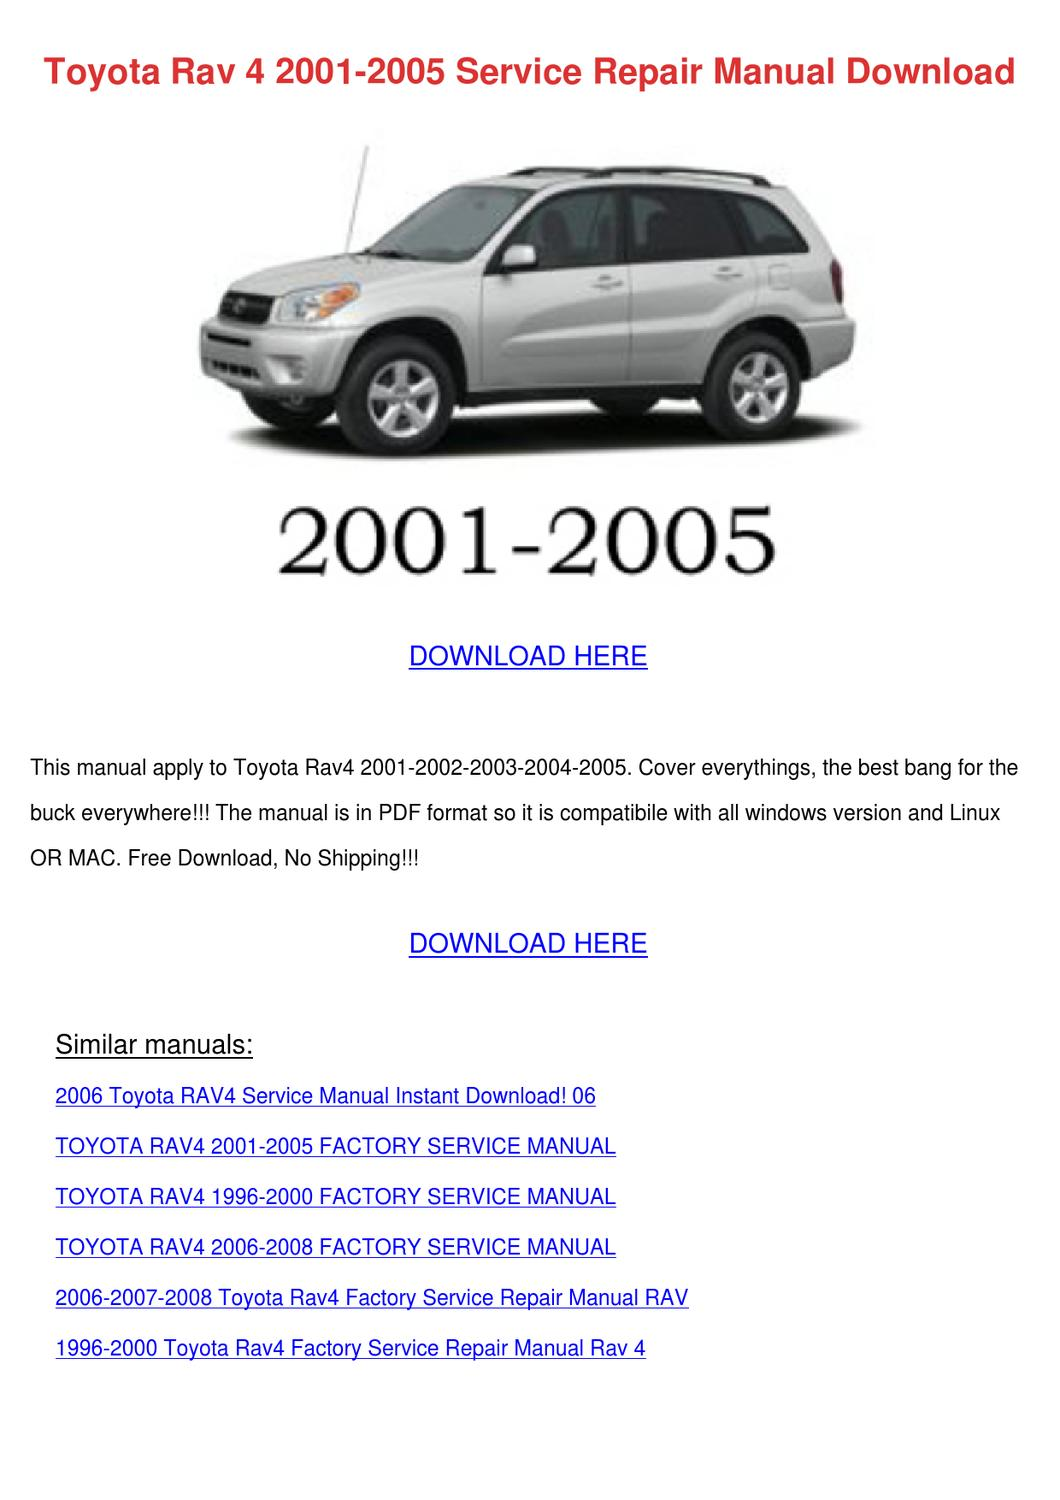 Toyota Rav 4 2001 2005 Service Repair Manual By Lillia Nagata Issuu